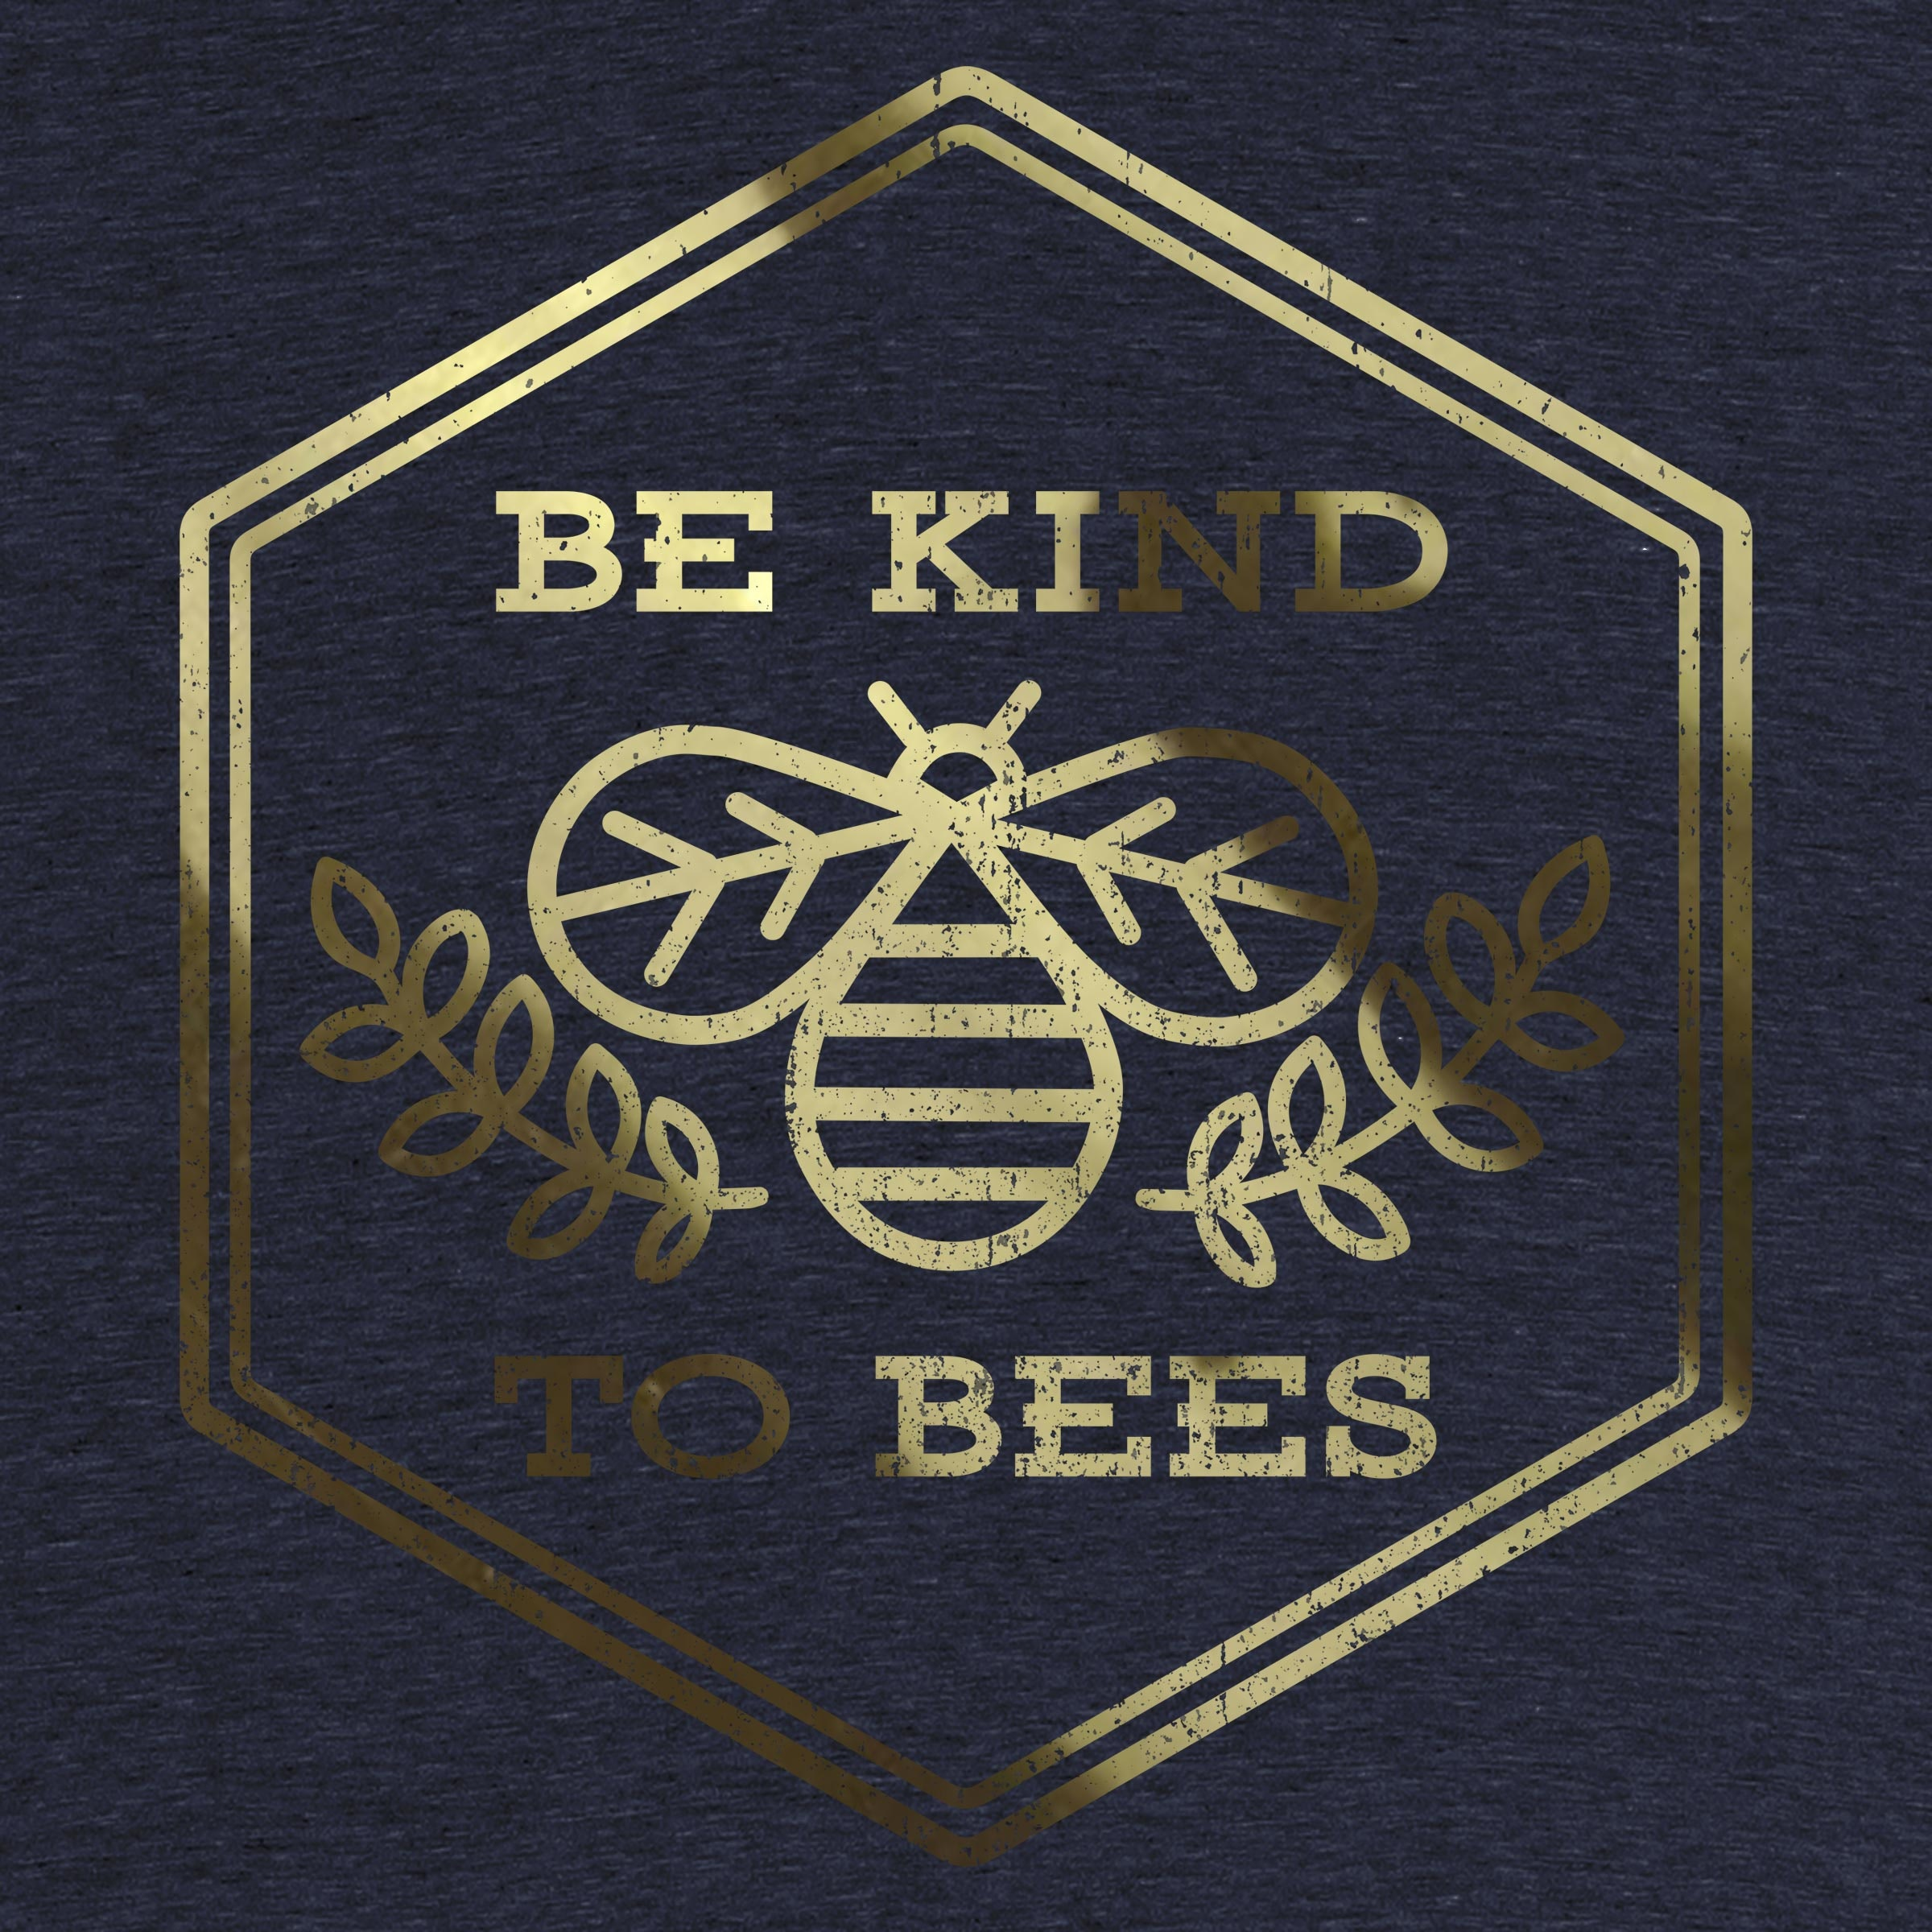 Be Kind to Bees